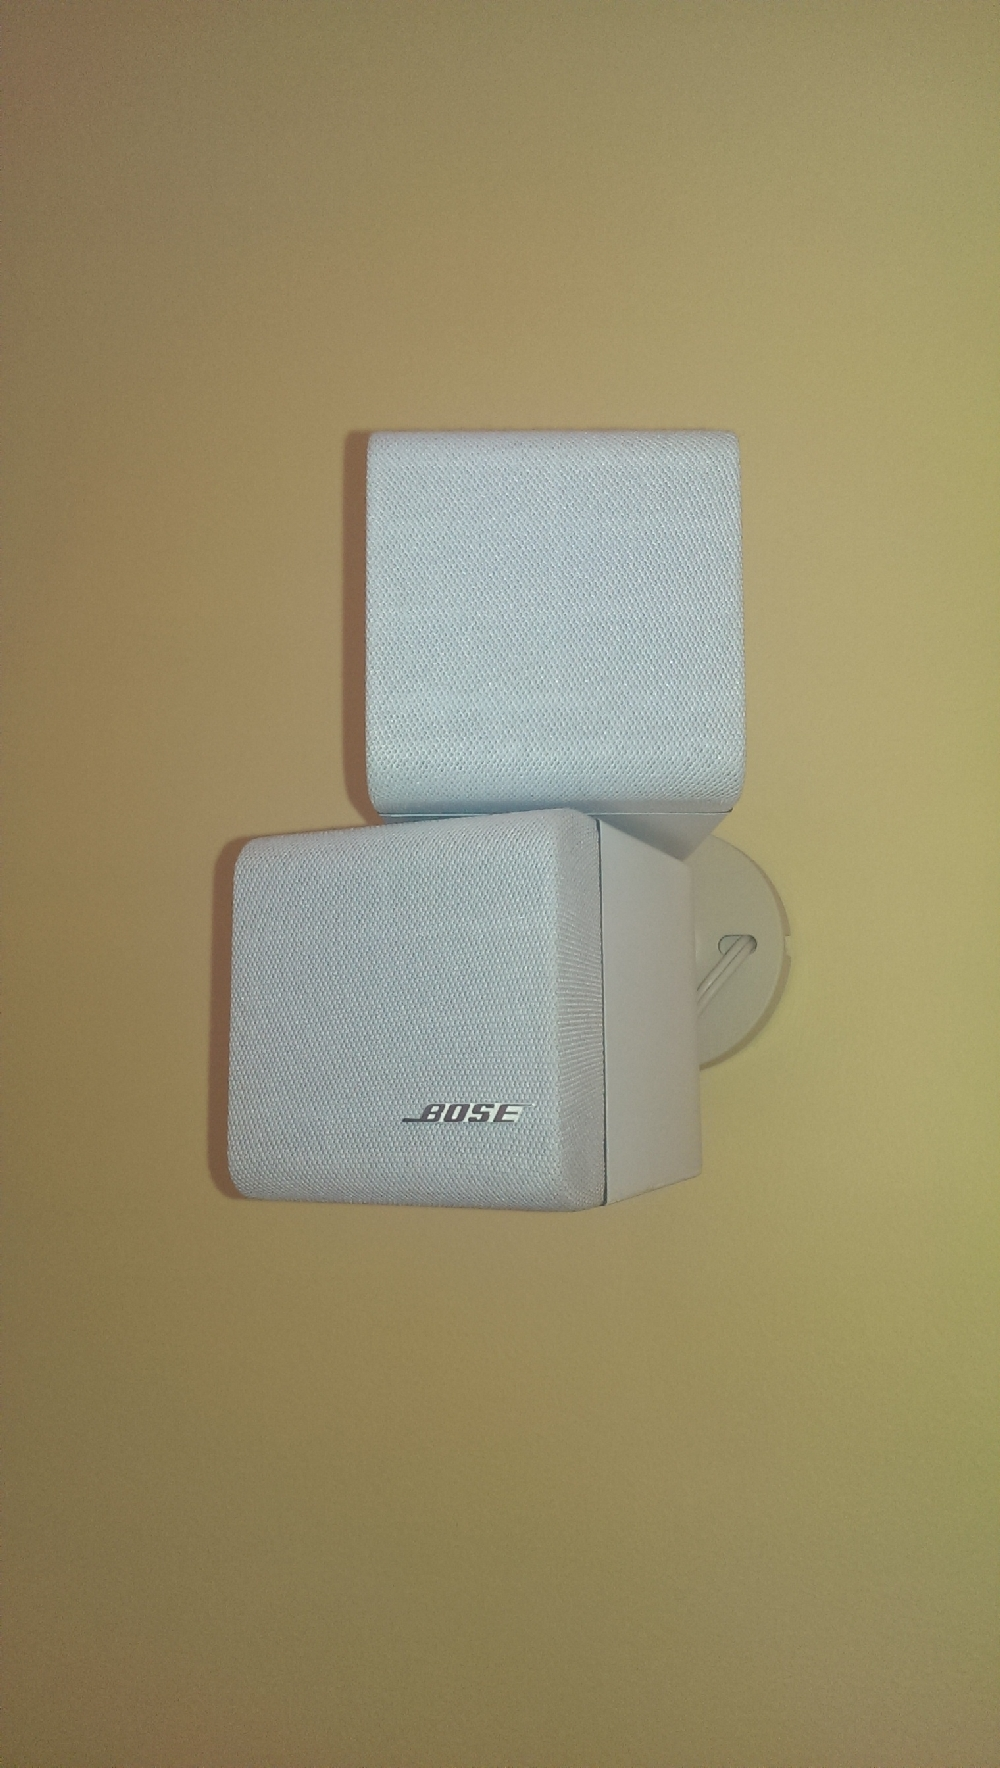 LR- wall mounted front bose surround speaker system